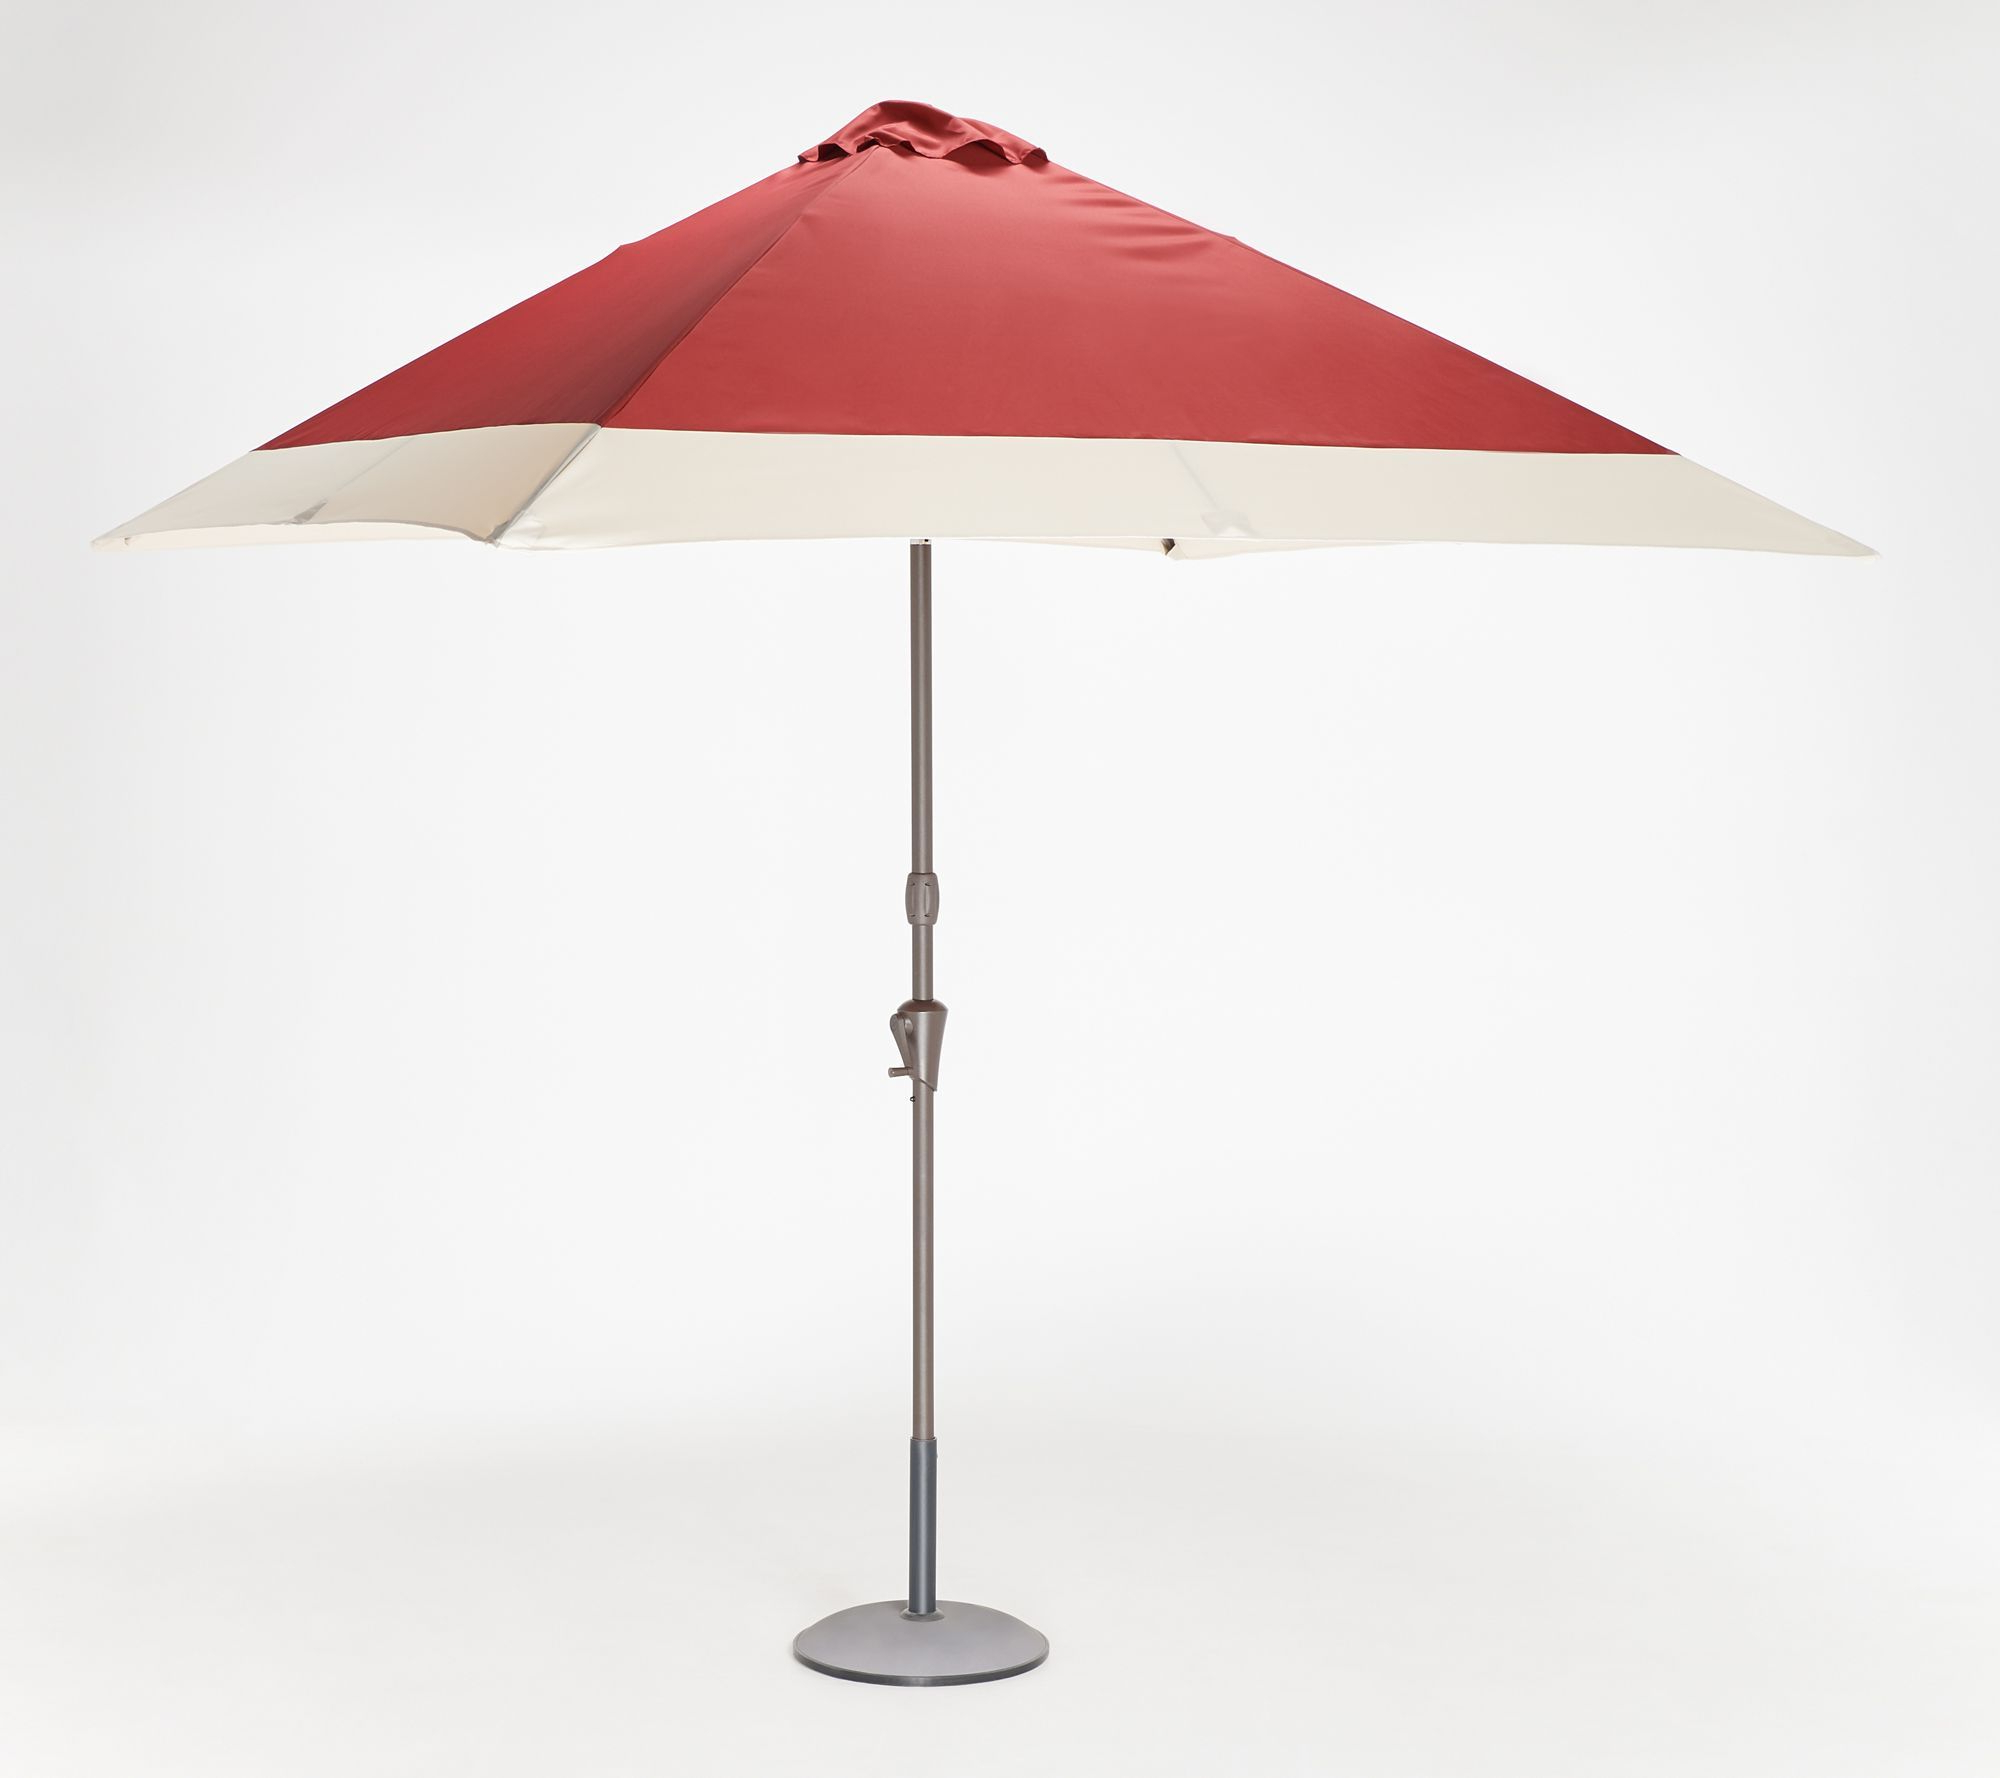 Hyperion Market Umbrellas In Well Known Measurements: Umbrella Open 7.5' X (View 7 of 20)